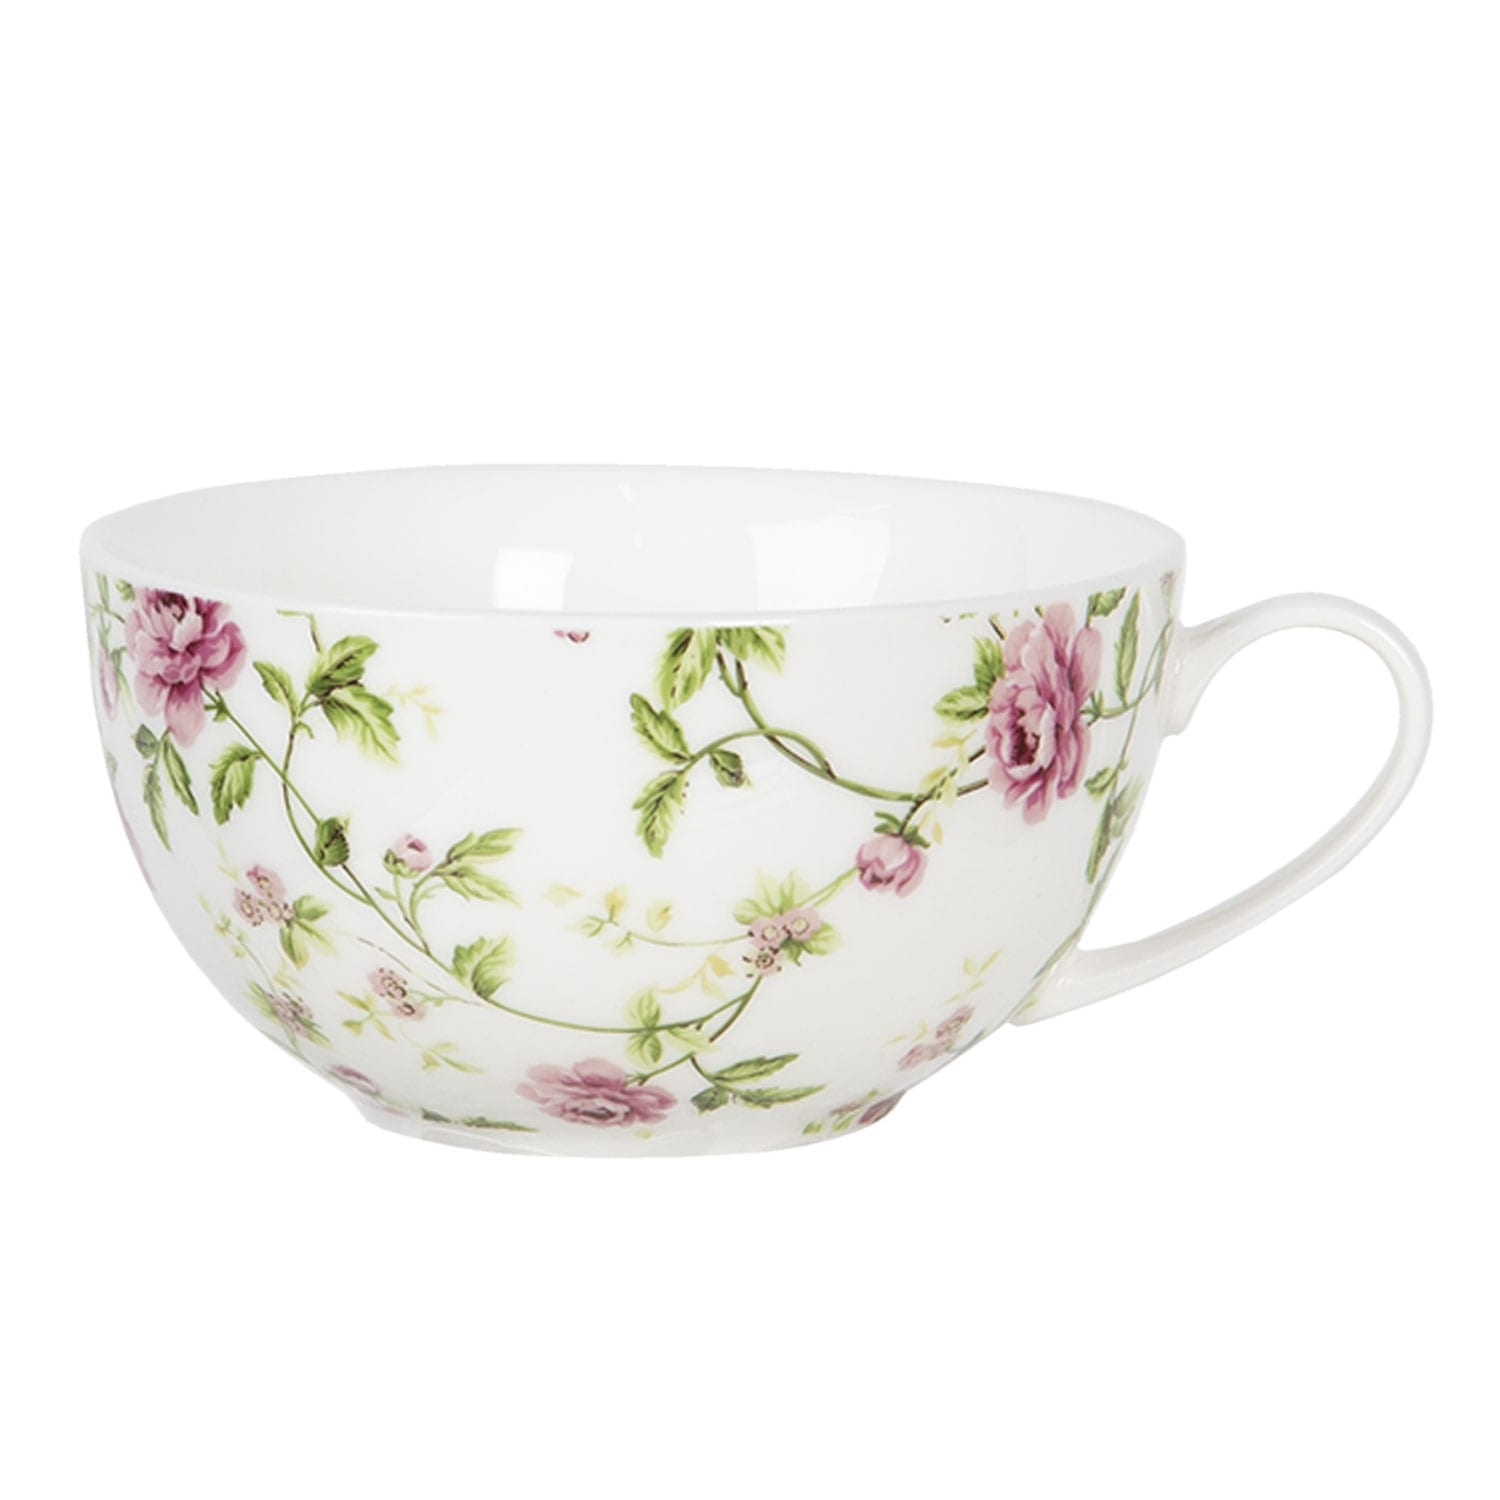 Set per té porcellana – Piccole roselline